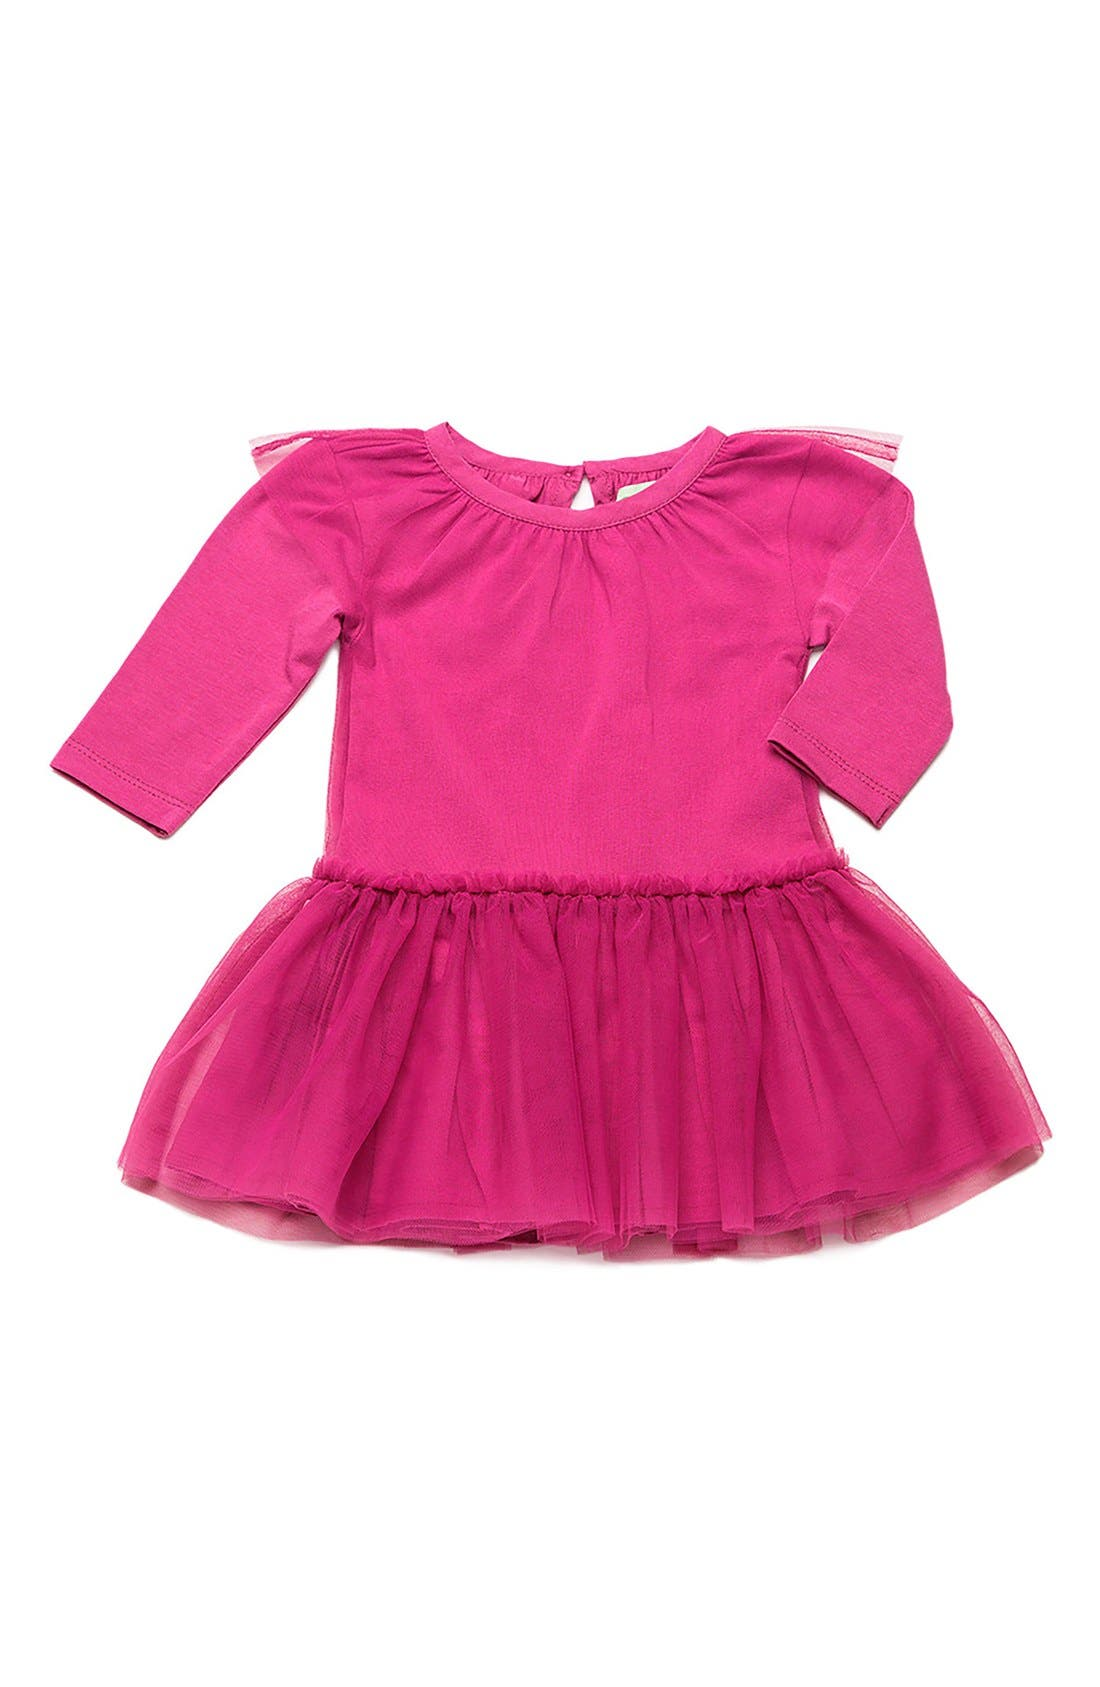 Alternate Image 1 Selected - Monica + Andy Little Belle Tulle Skirt Dress (Baby Girls)